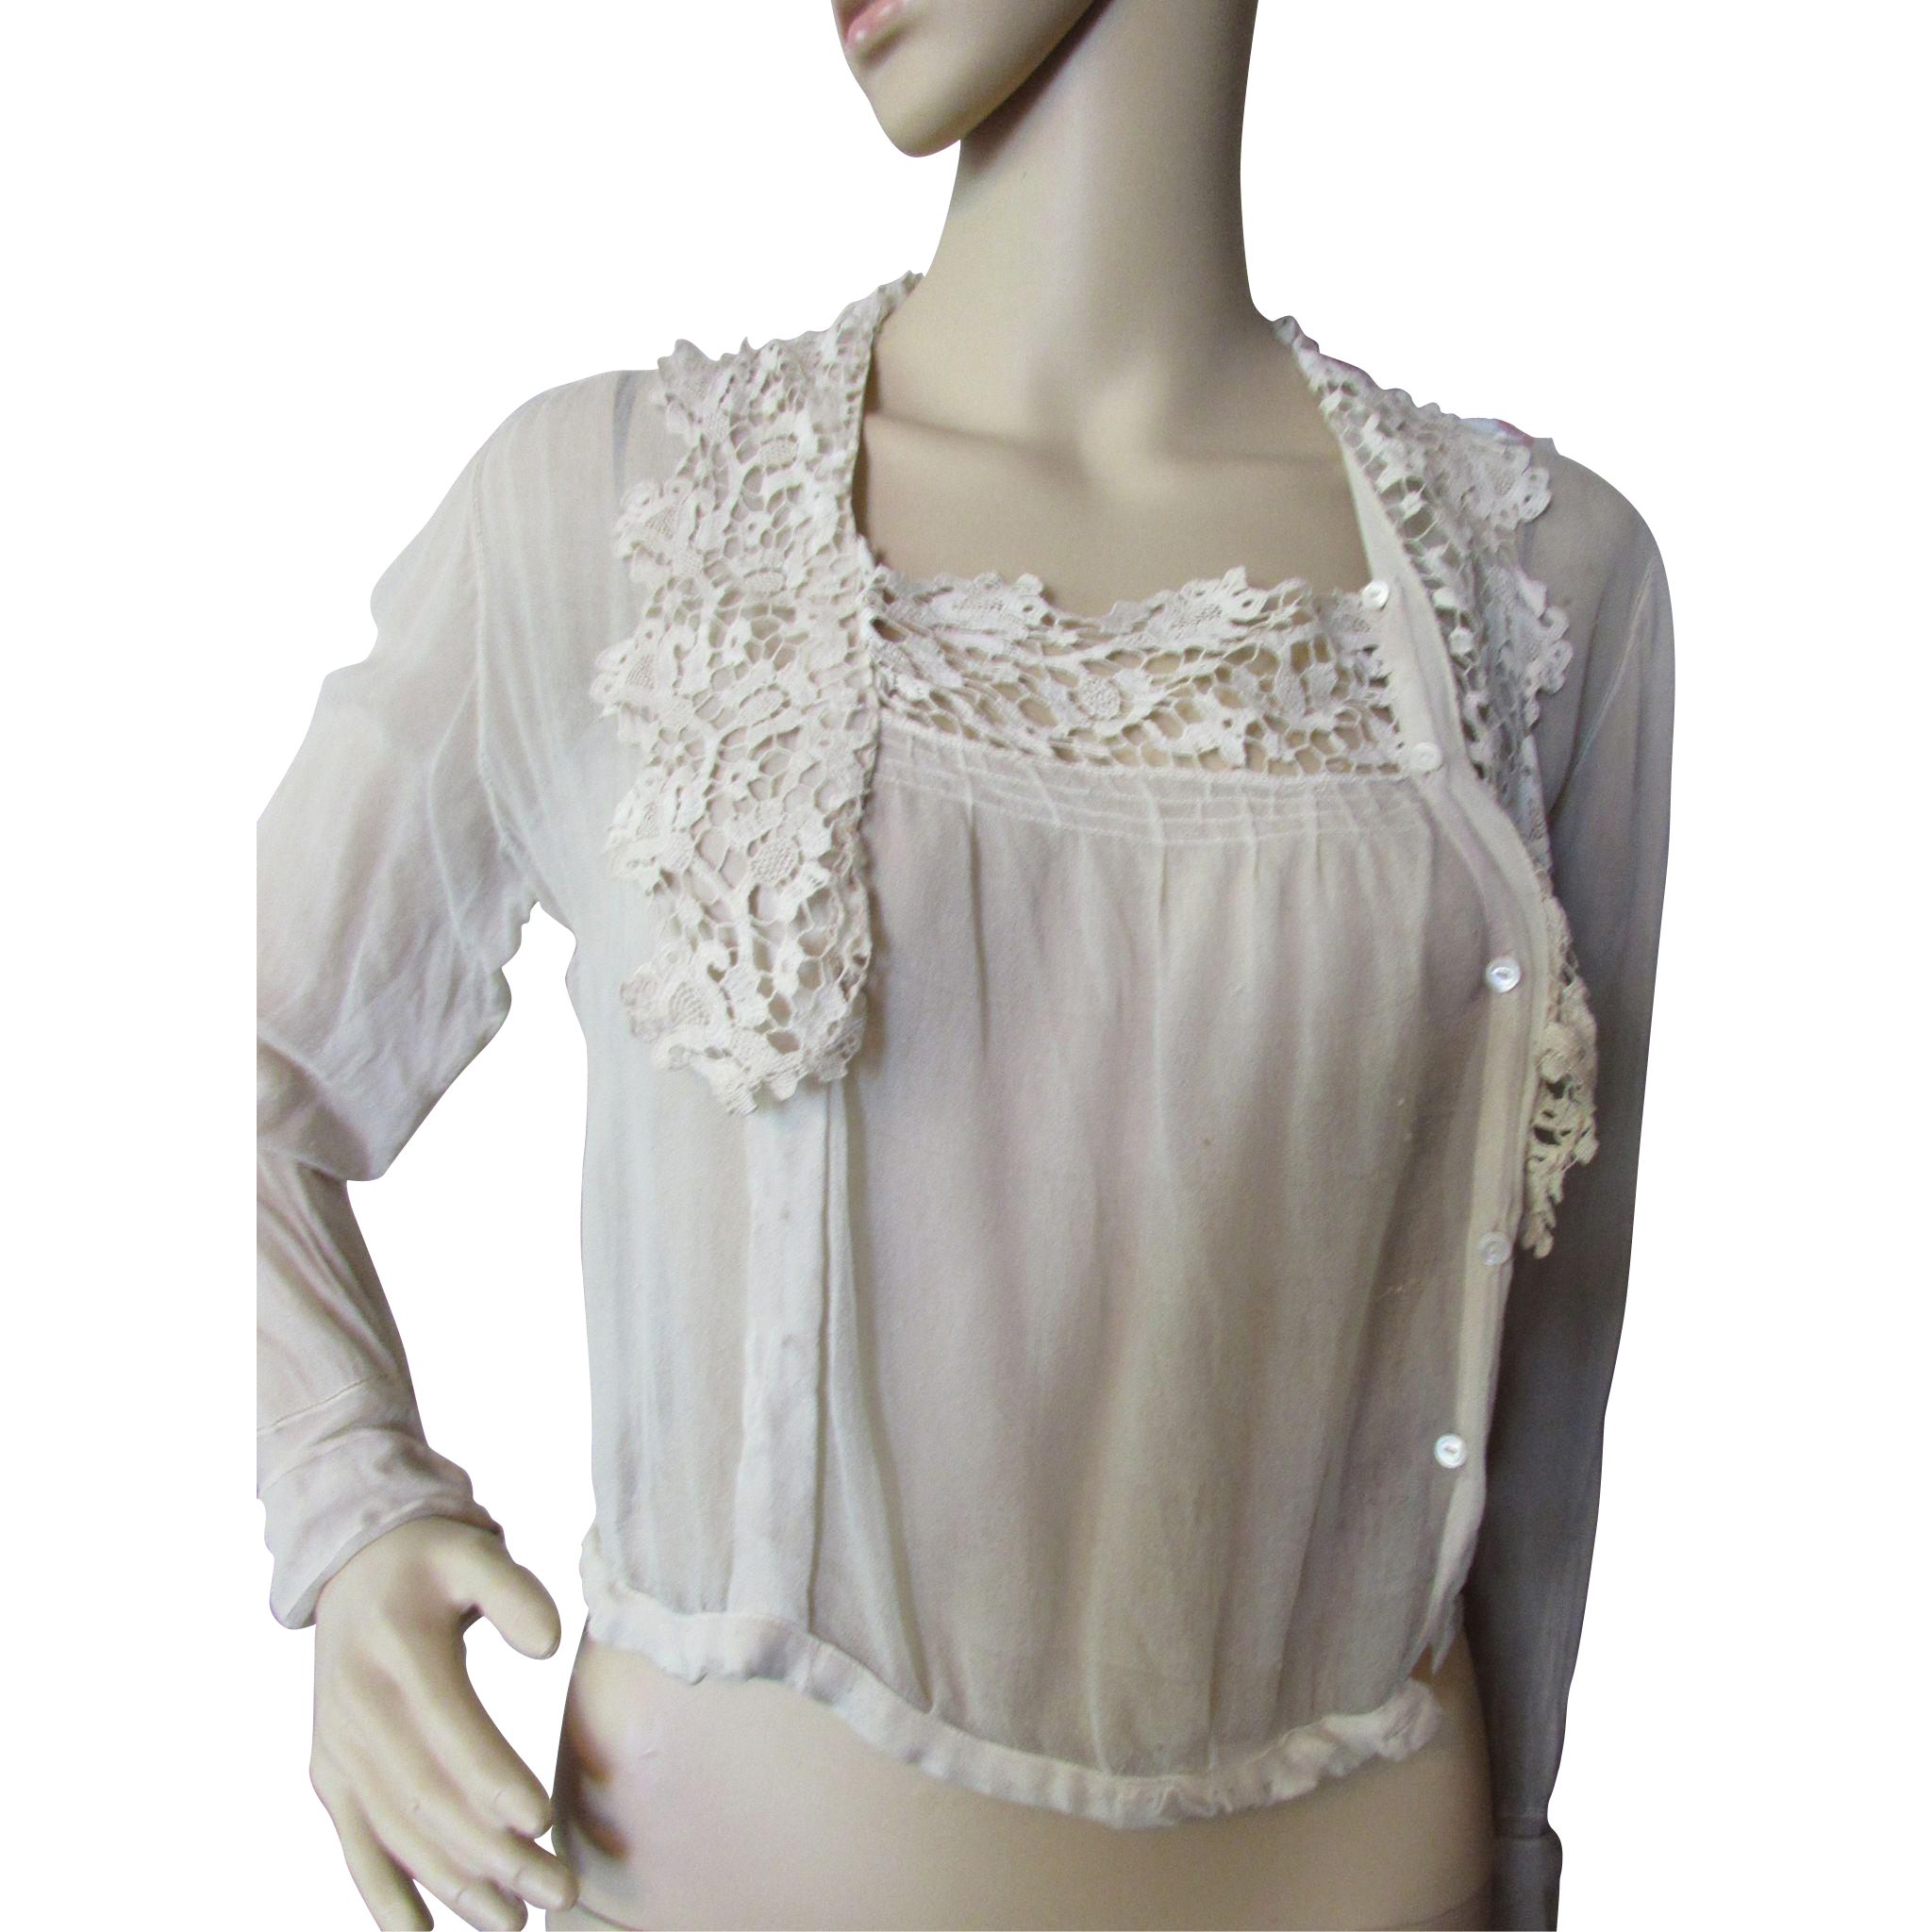 1920 Style Blouse in Oyster Tone with Lace Collar for Salvage